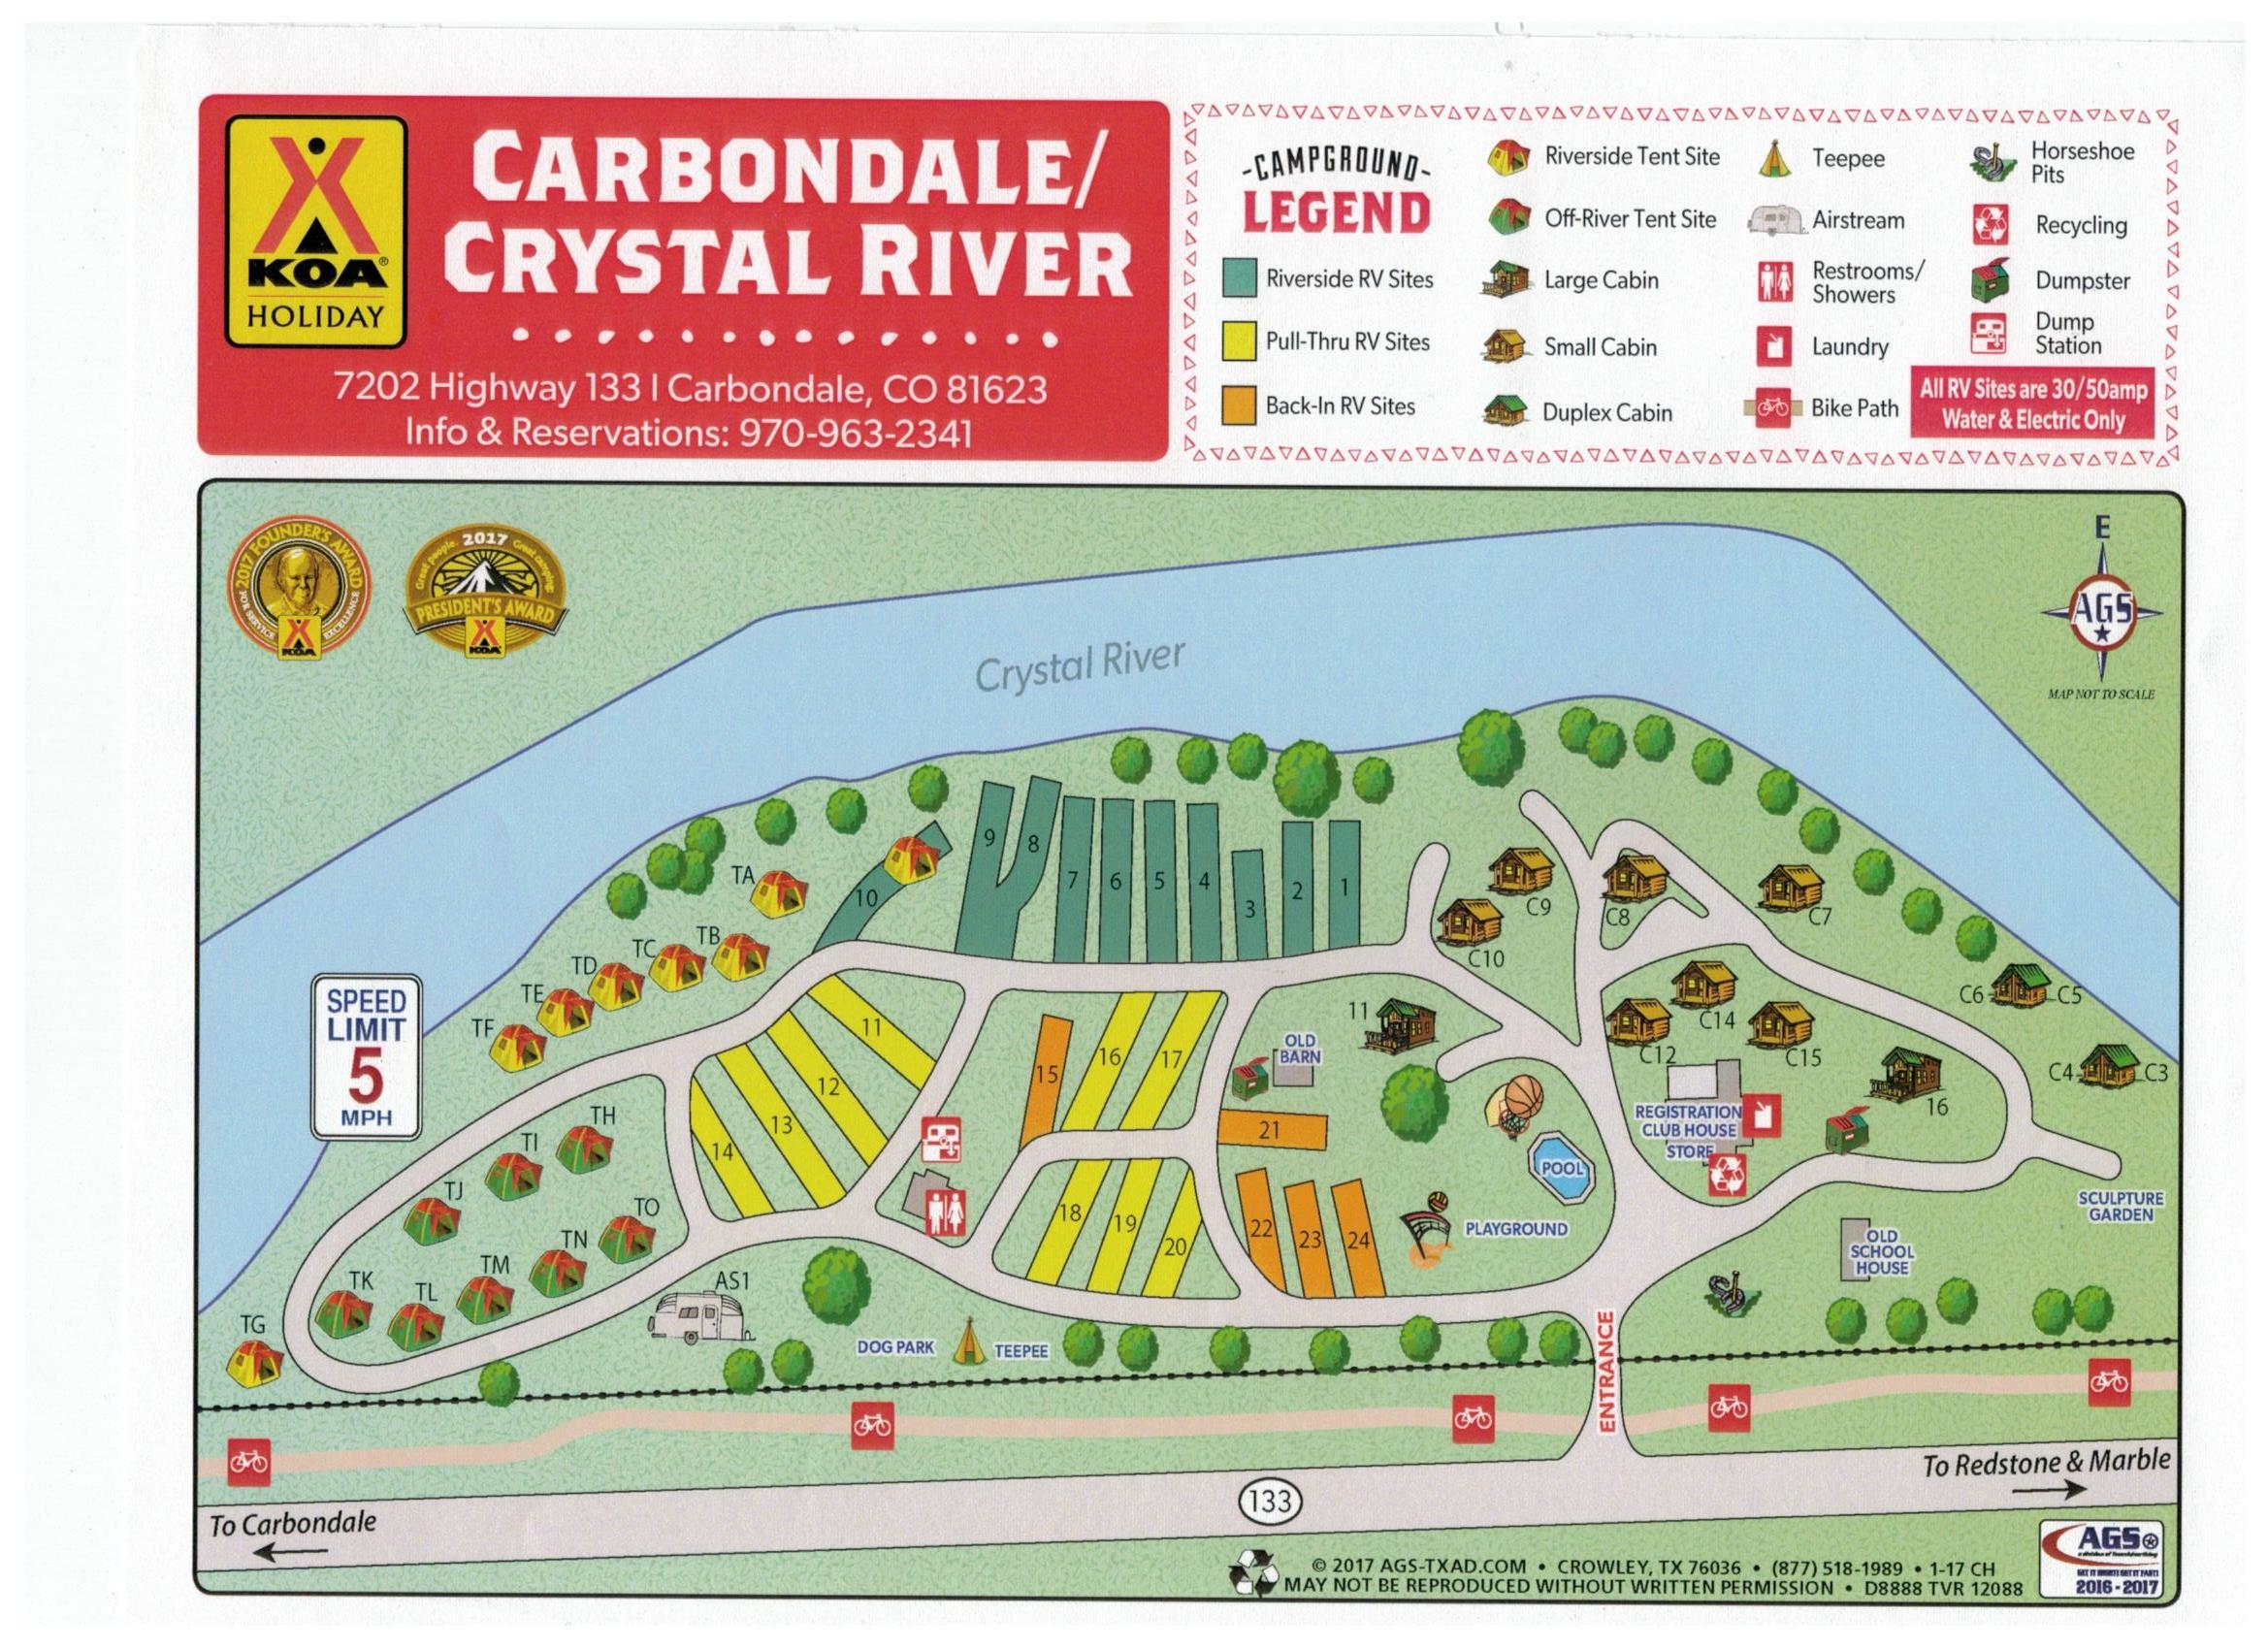 Carbondale Colorado Tent Camping Sites Carbondale